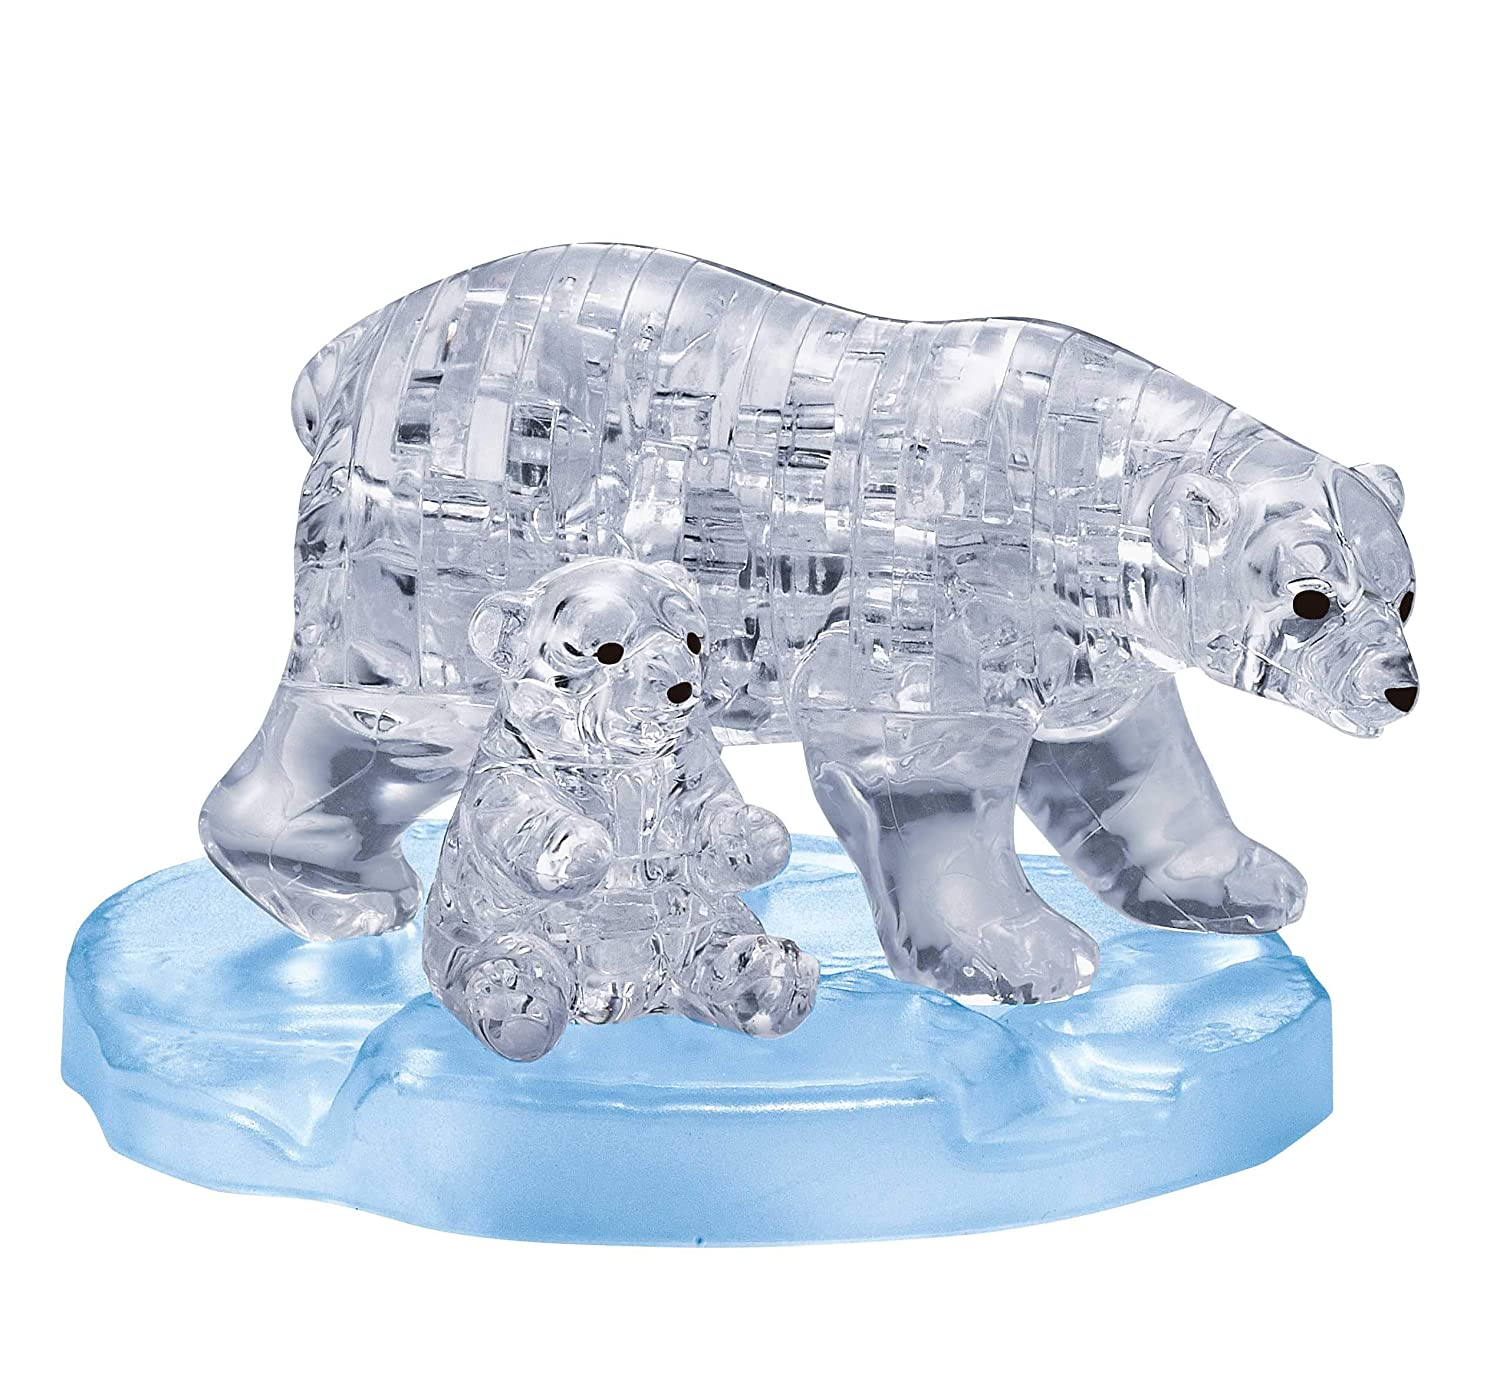 Original 3D Crystal Puzzle - Polar Bear and Baby: 40 Pieces BePuzzled 31079